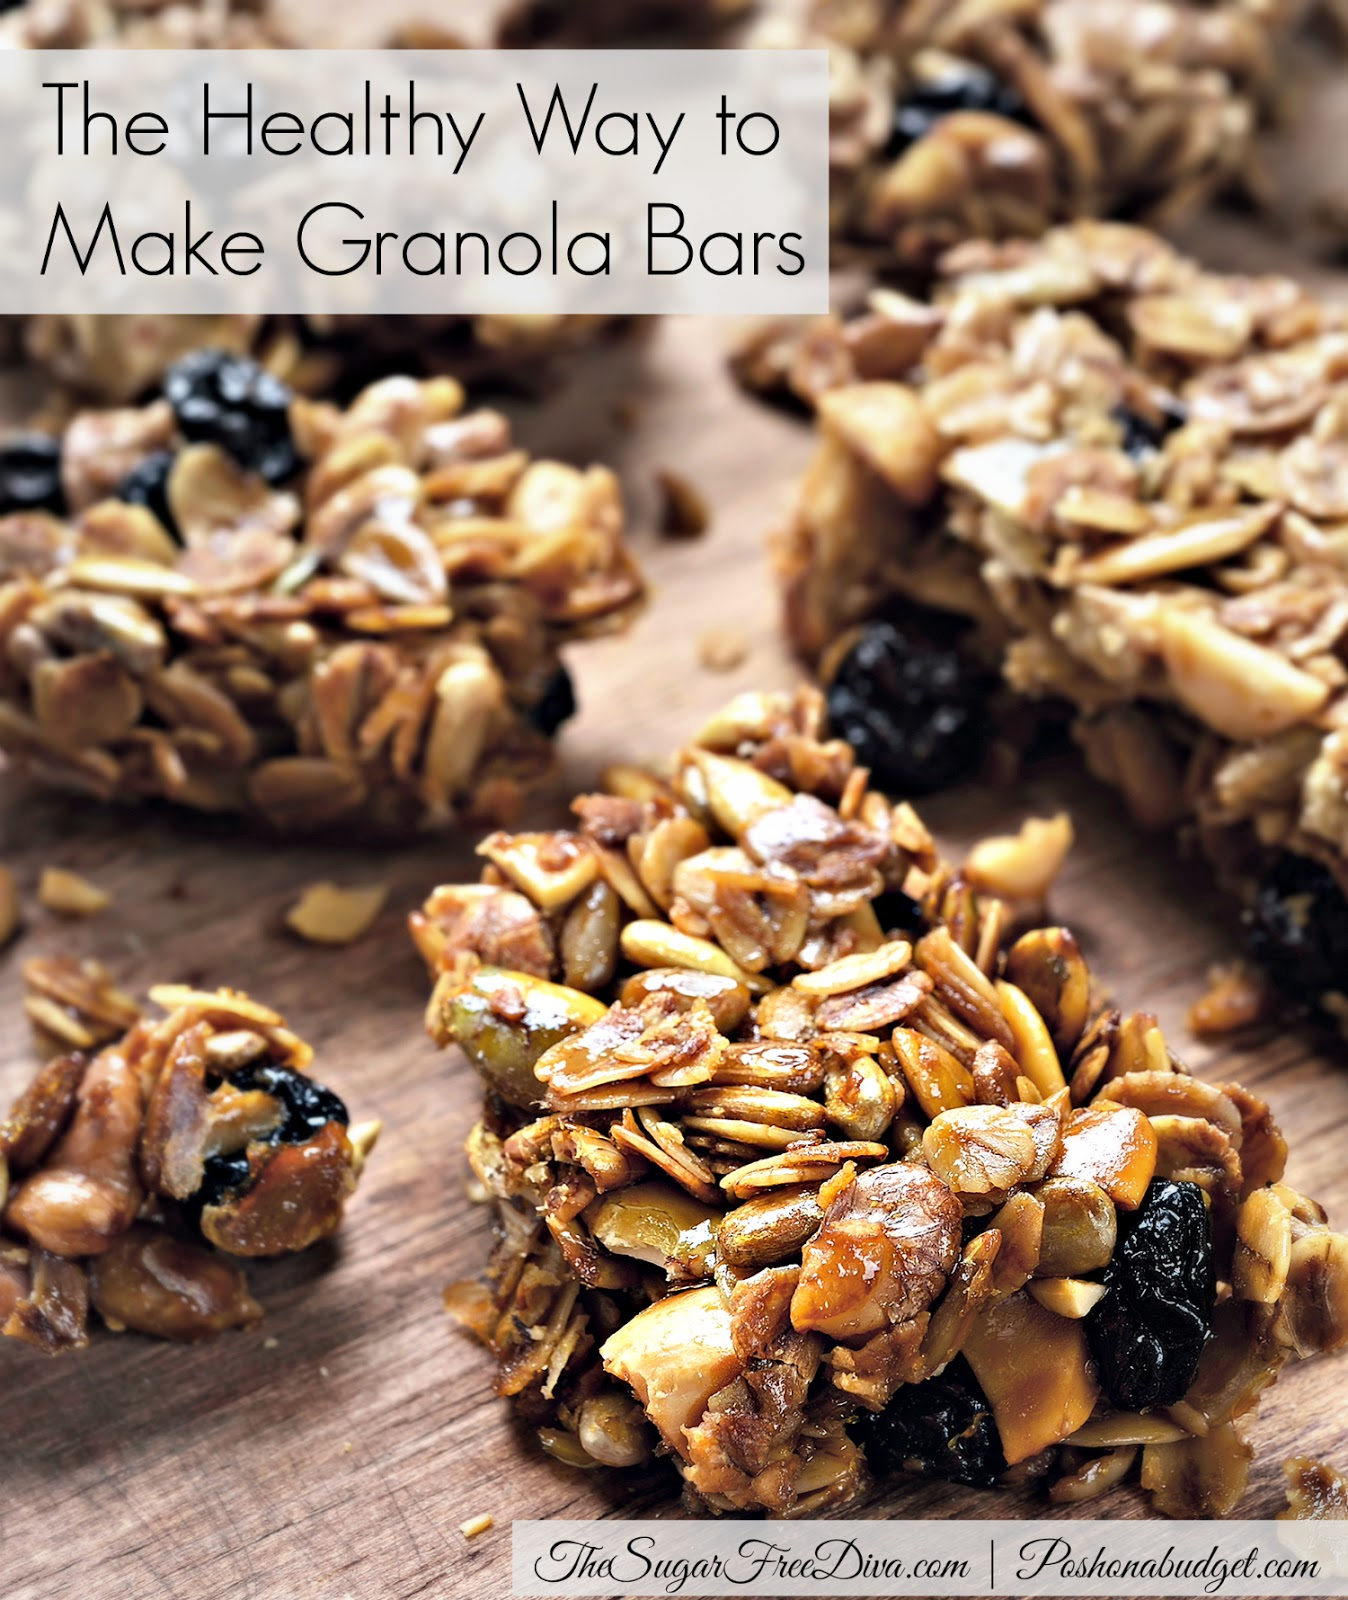 The Healthy Way to Make Granola Bars